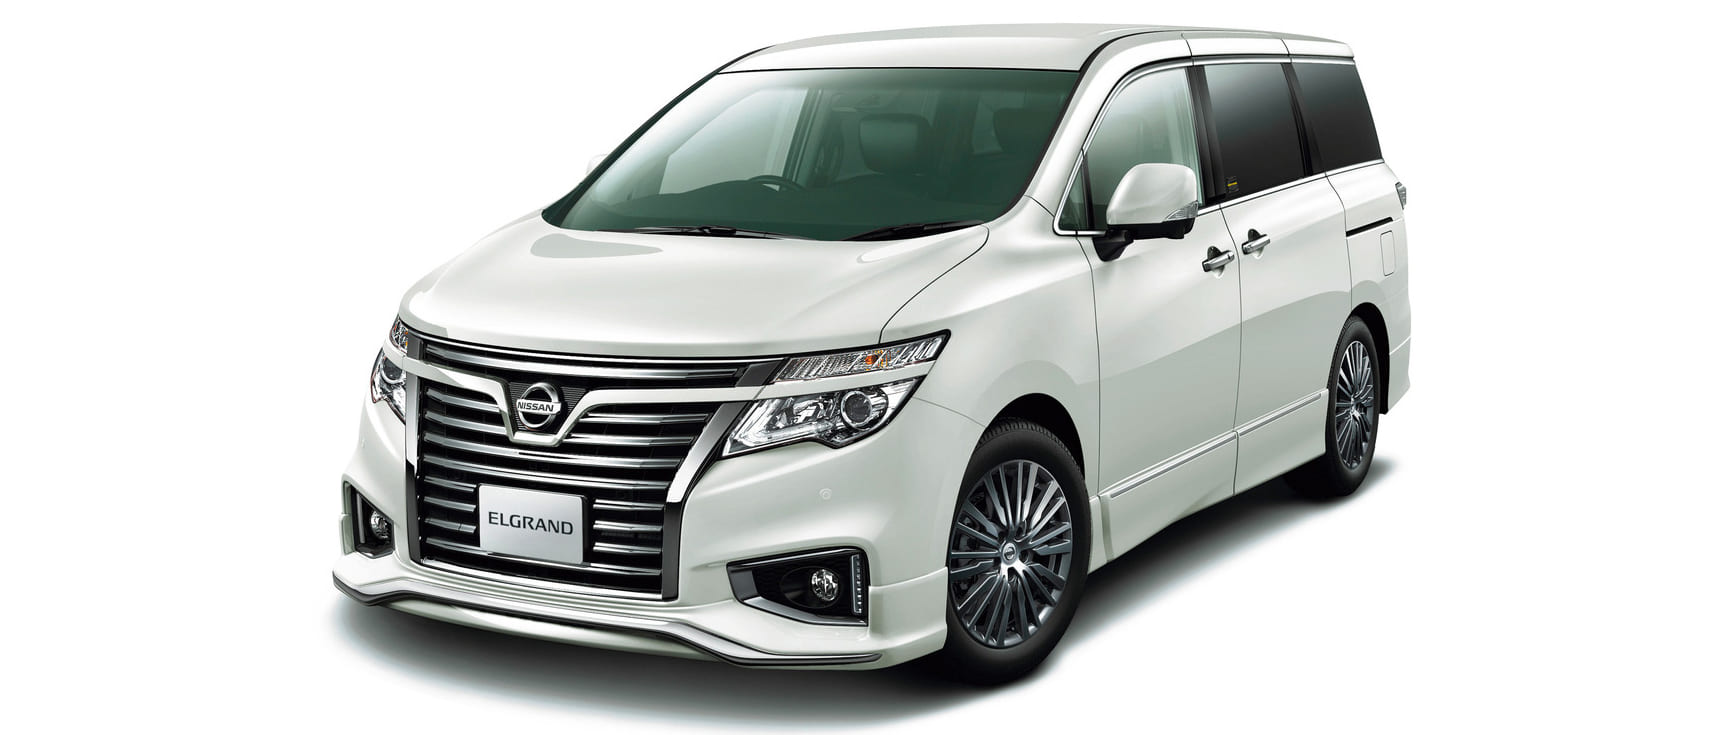 Nissan_ELGRAND_CBA-ME51_front_side